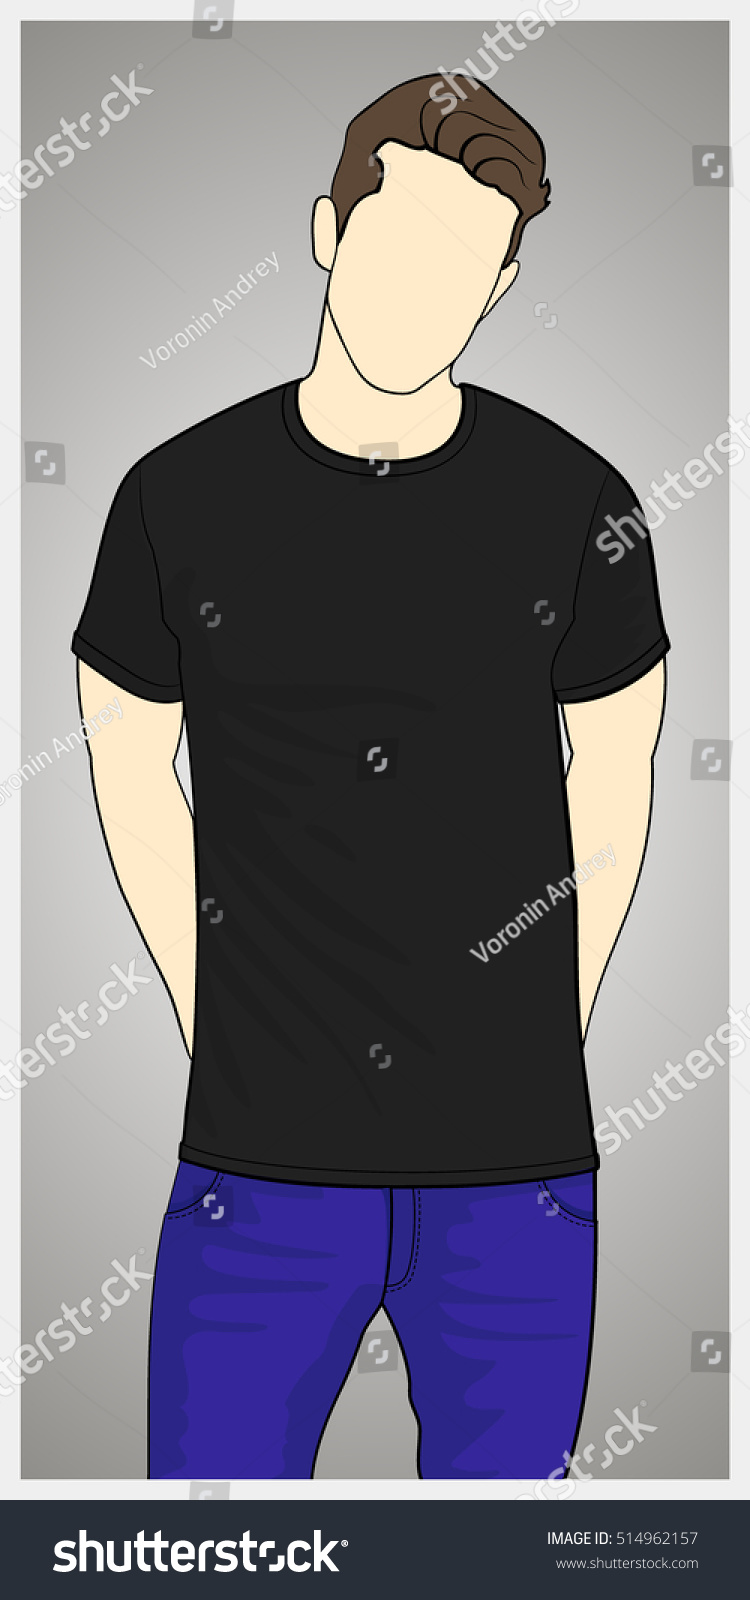 Black t shirt vector - T Shirt Template Front View On The Man Man Body Silhouette Black Color